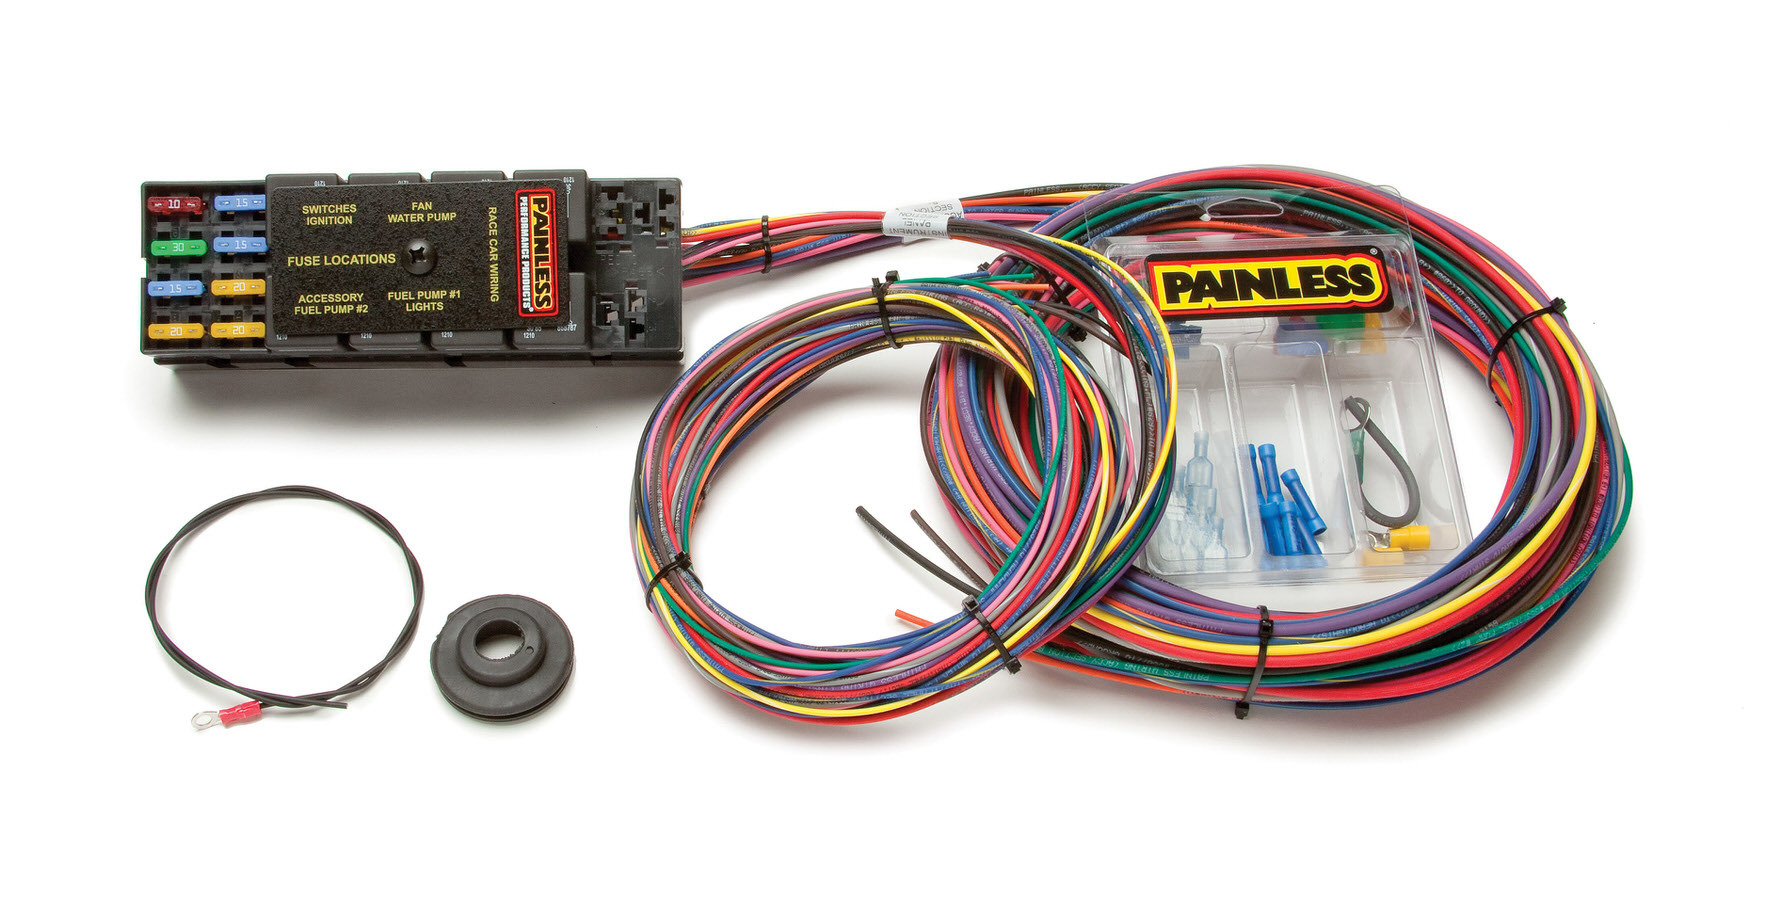 Painless Wiring 50001 Car Wiring Harness, Race Car Only, Com